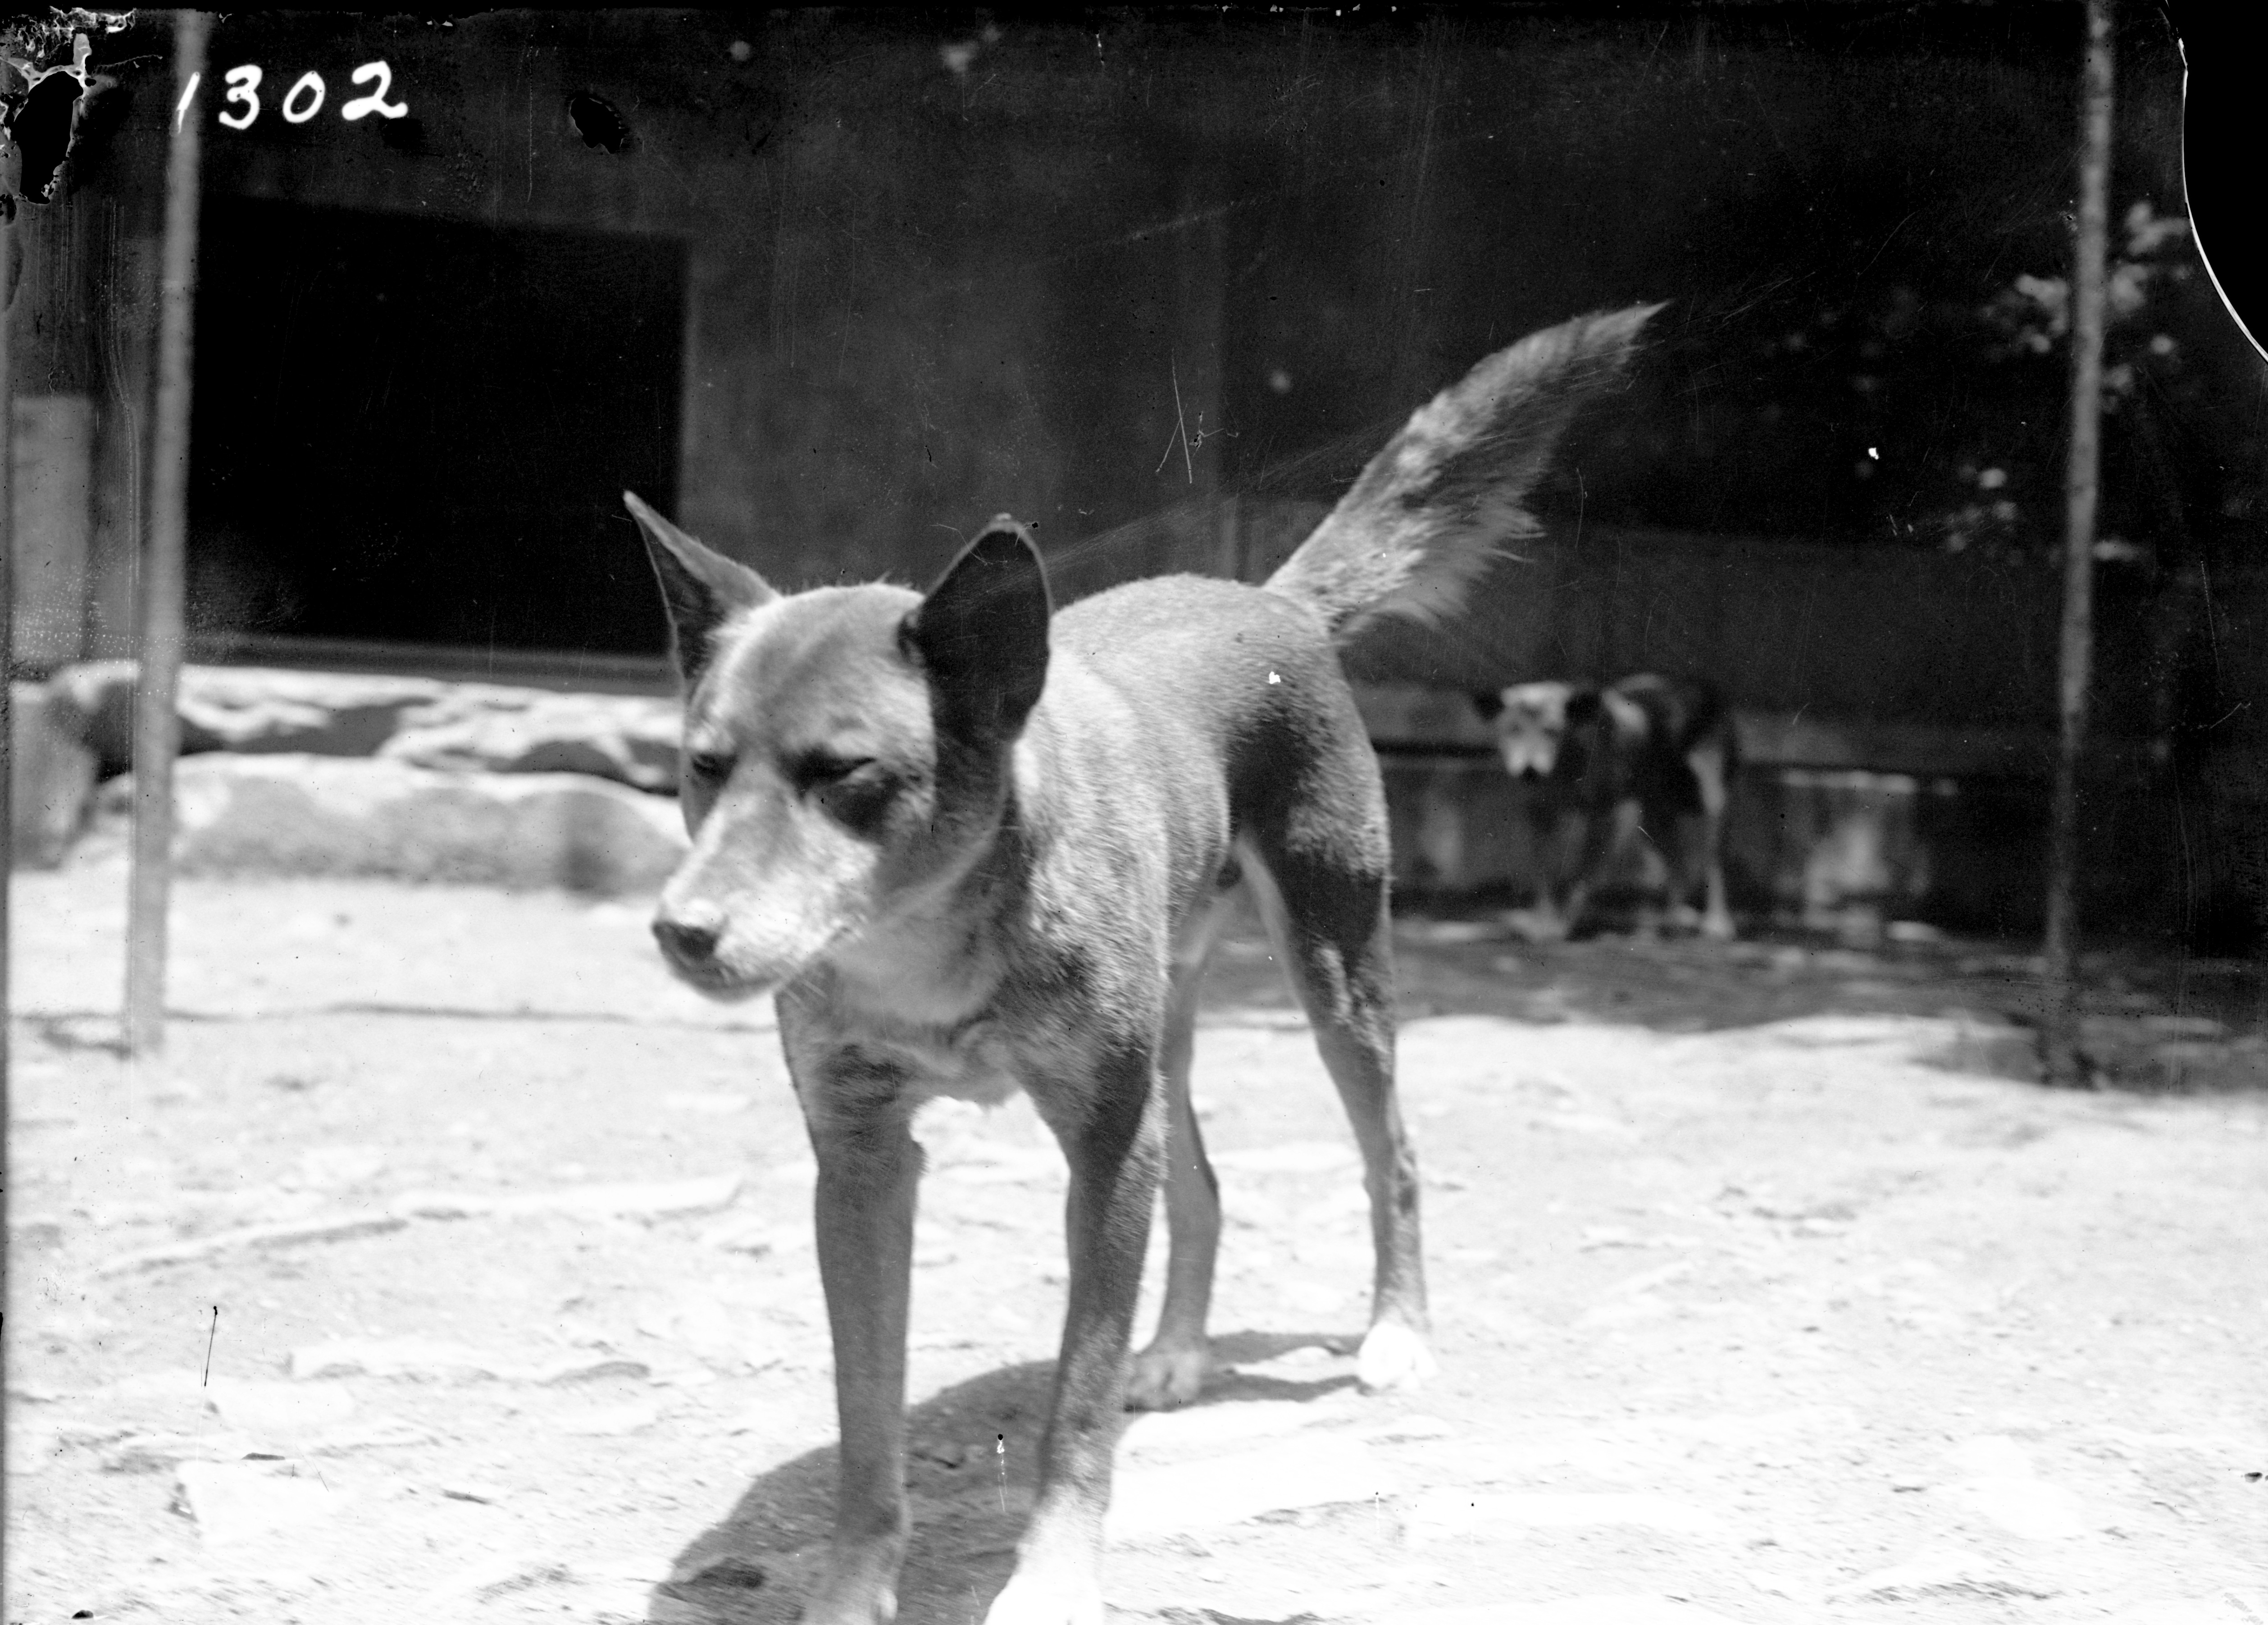 Black and white image of dog standing.